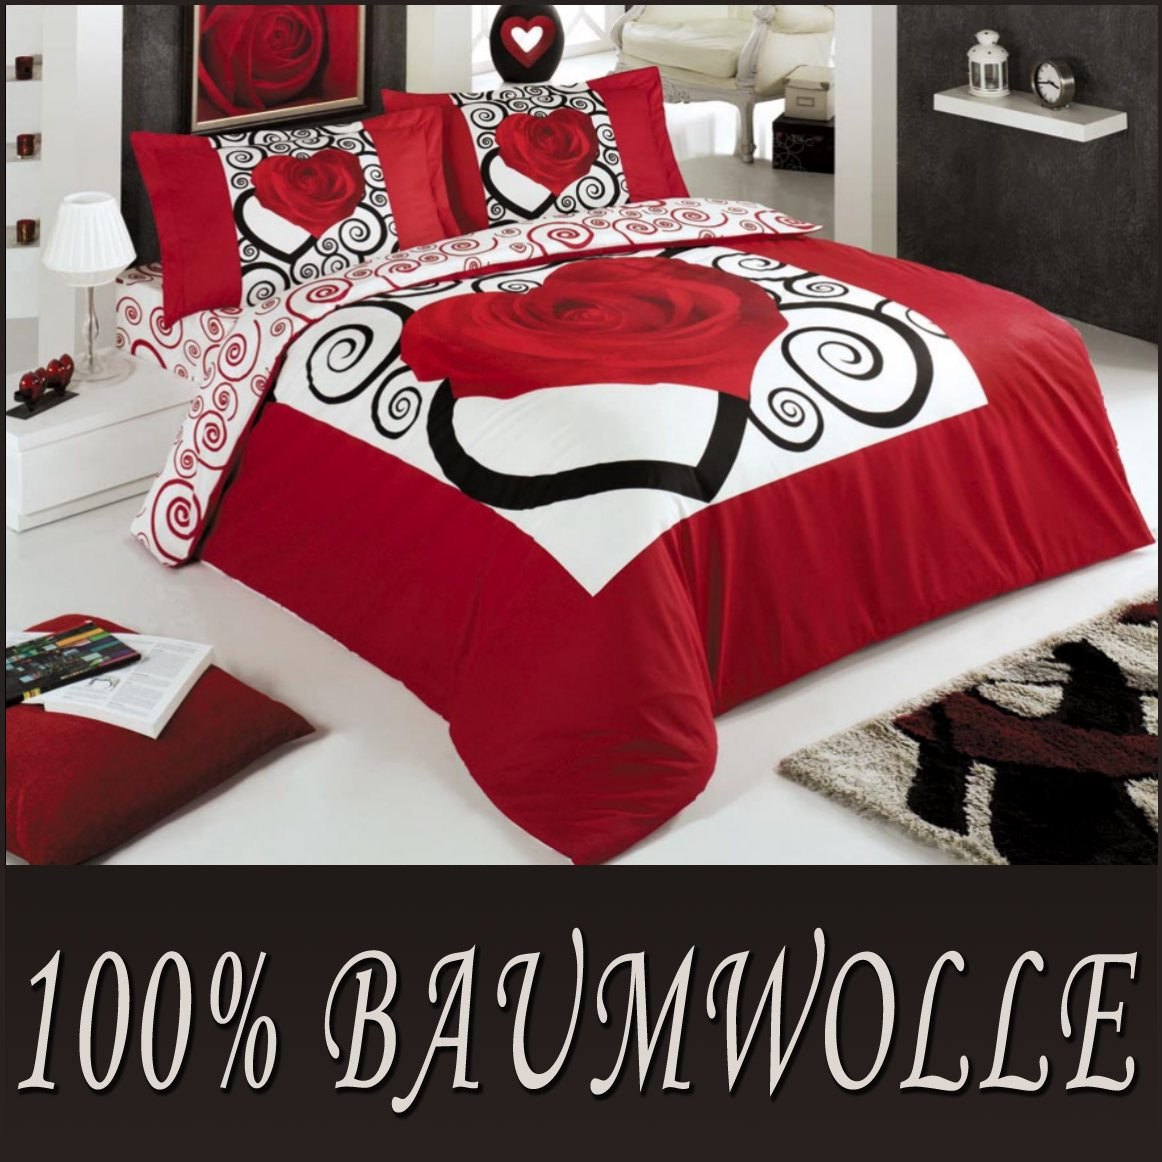 4 tlg bettw sche baumwolle 200x220 cm tutku rot herz rose neu ebay. Black Bedroom Furniture Sets. Home Design Ideas